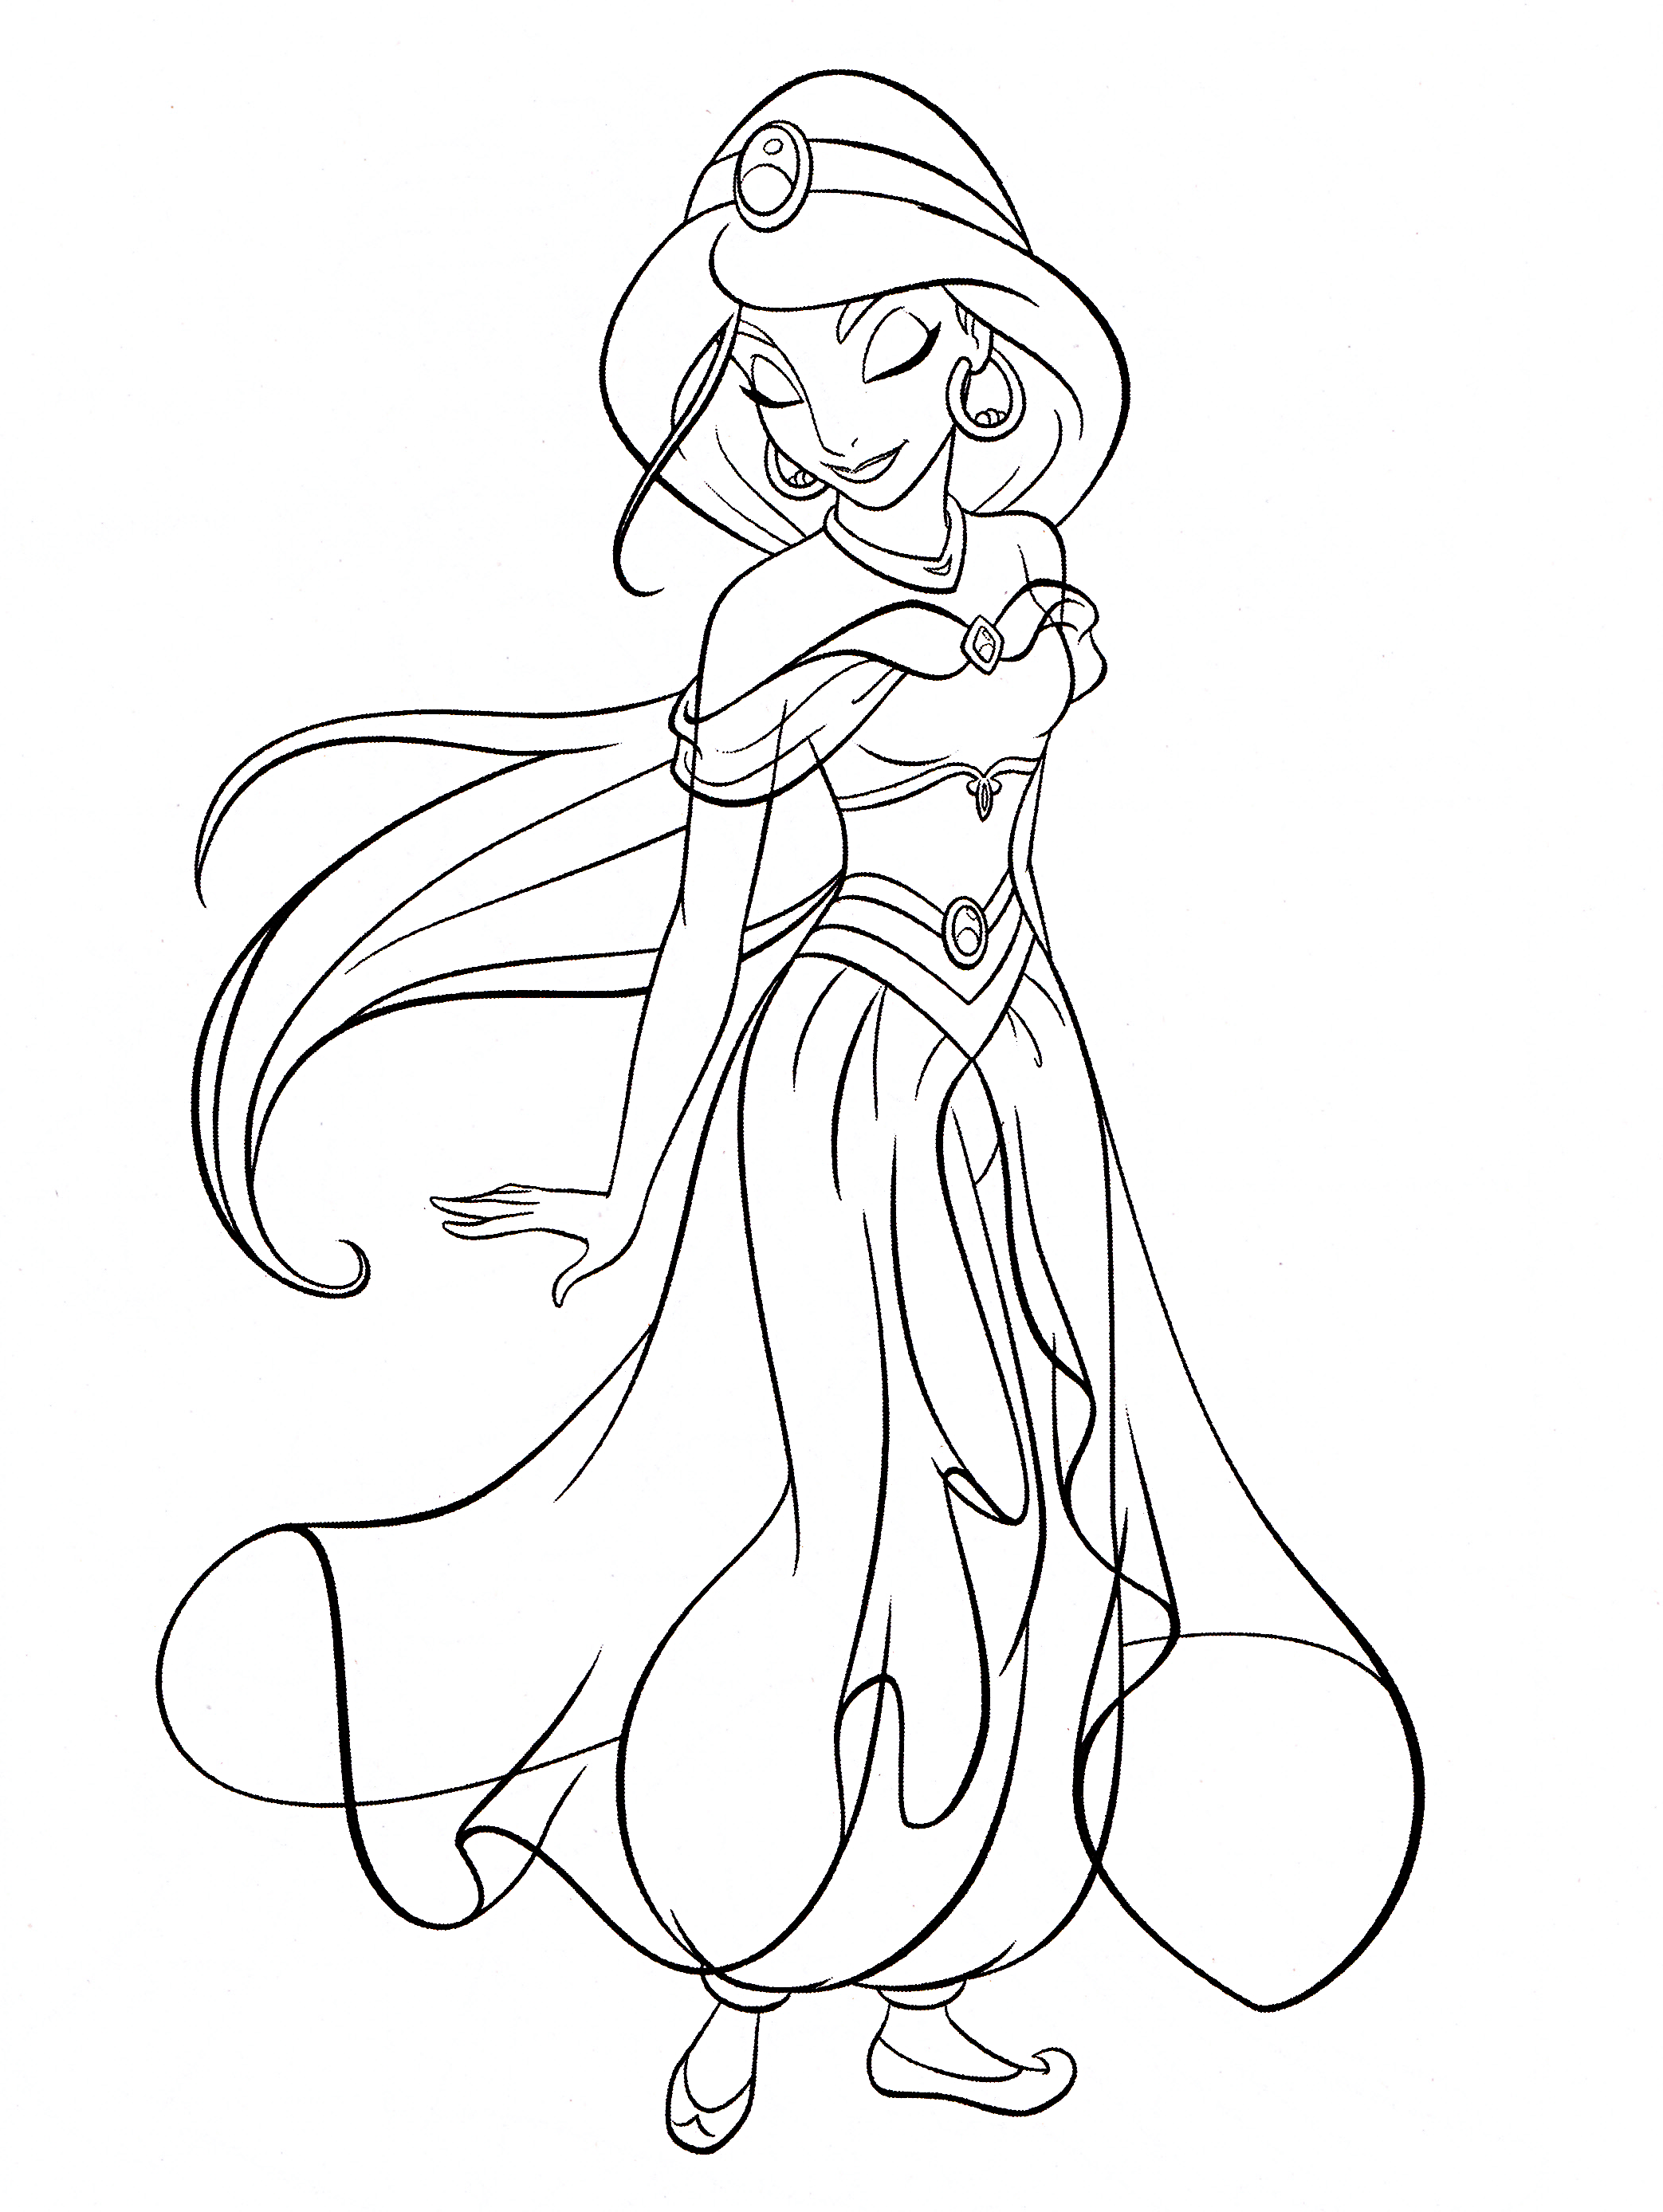 Walt Disney Coloring Pages Princess Jasmine Disney Princess Coloring Pages Princess Coloring Pages Disney Princess Colors